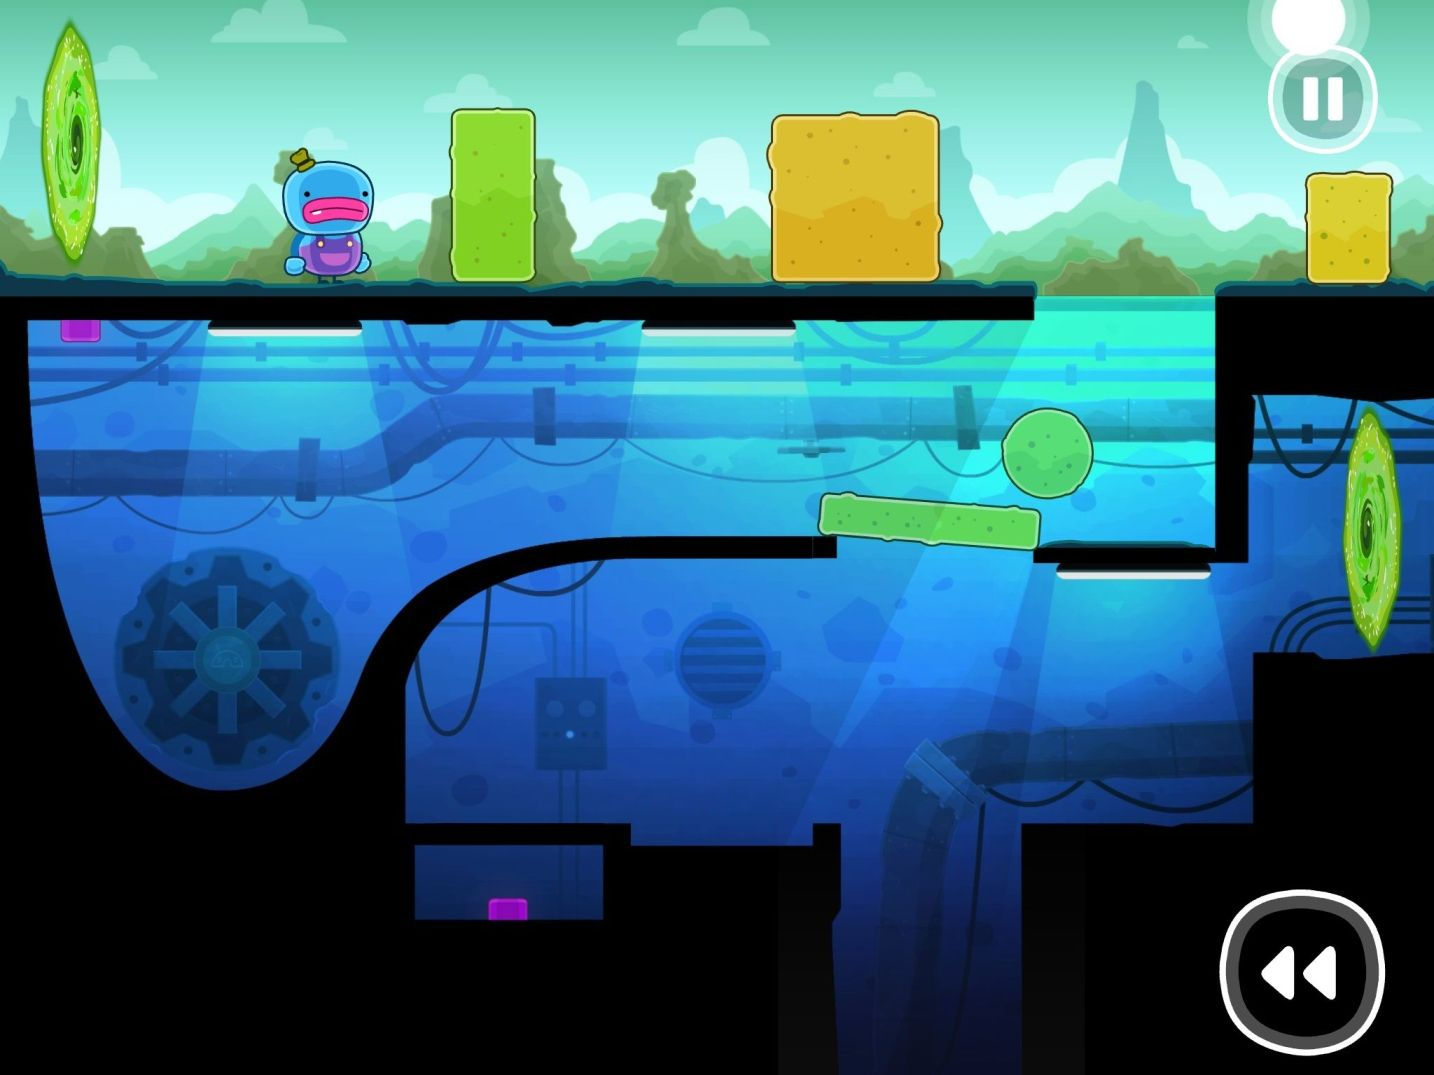 Bring You Home (copie d'écran 5 sur iPhone / iPad / Apple TV)